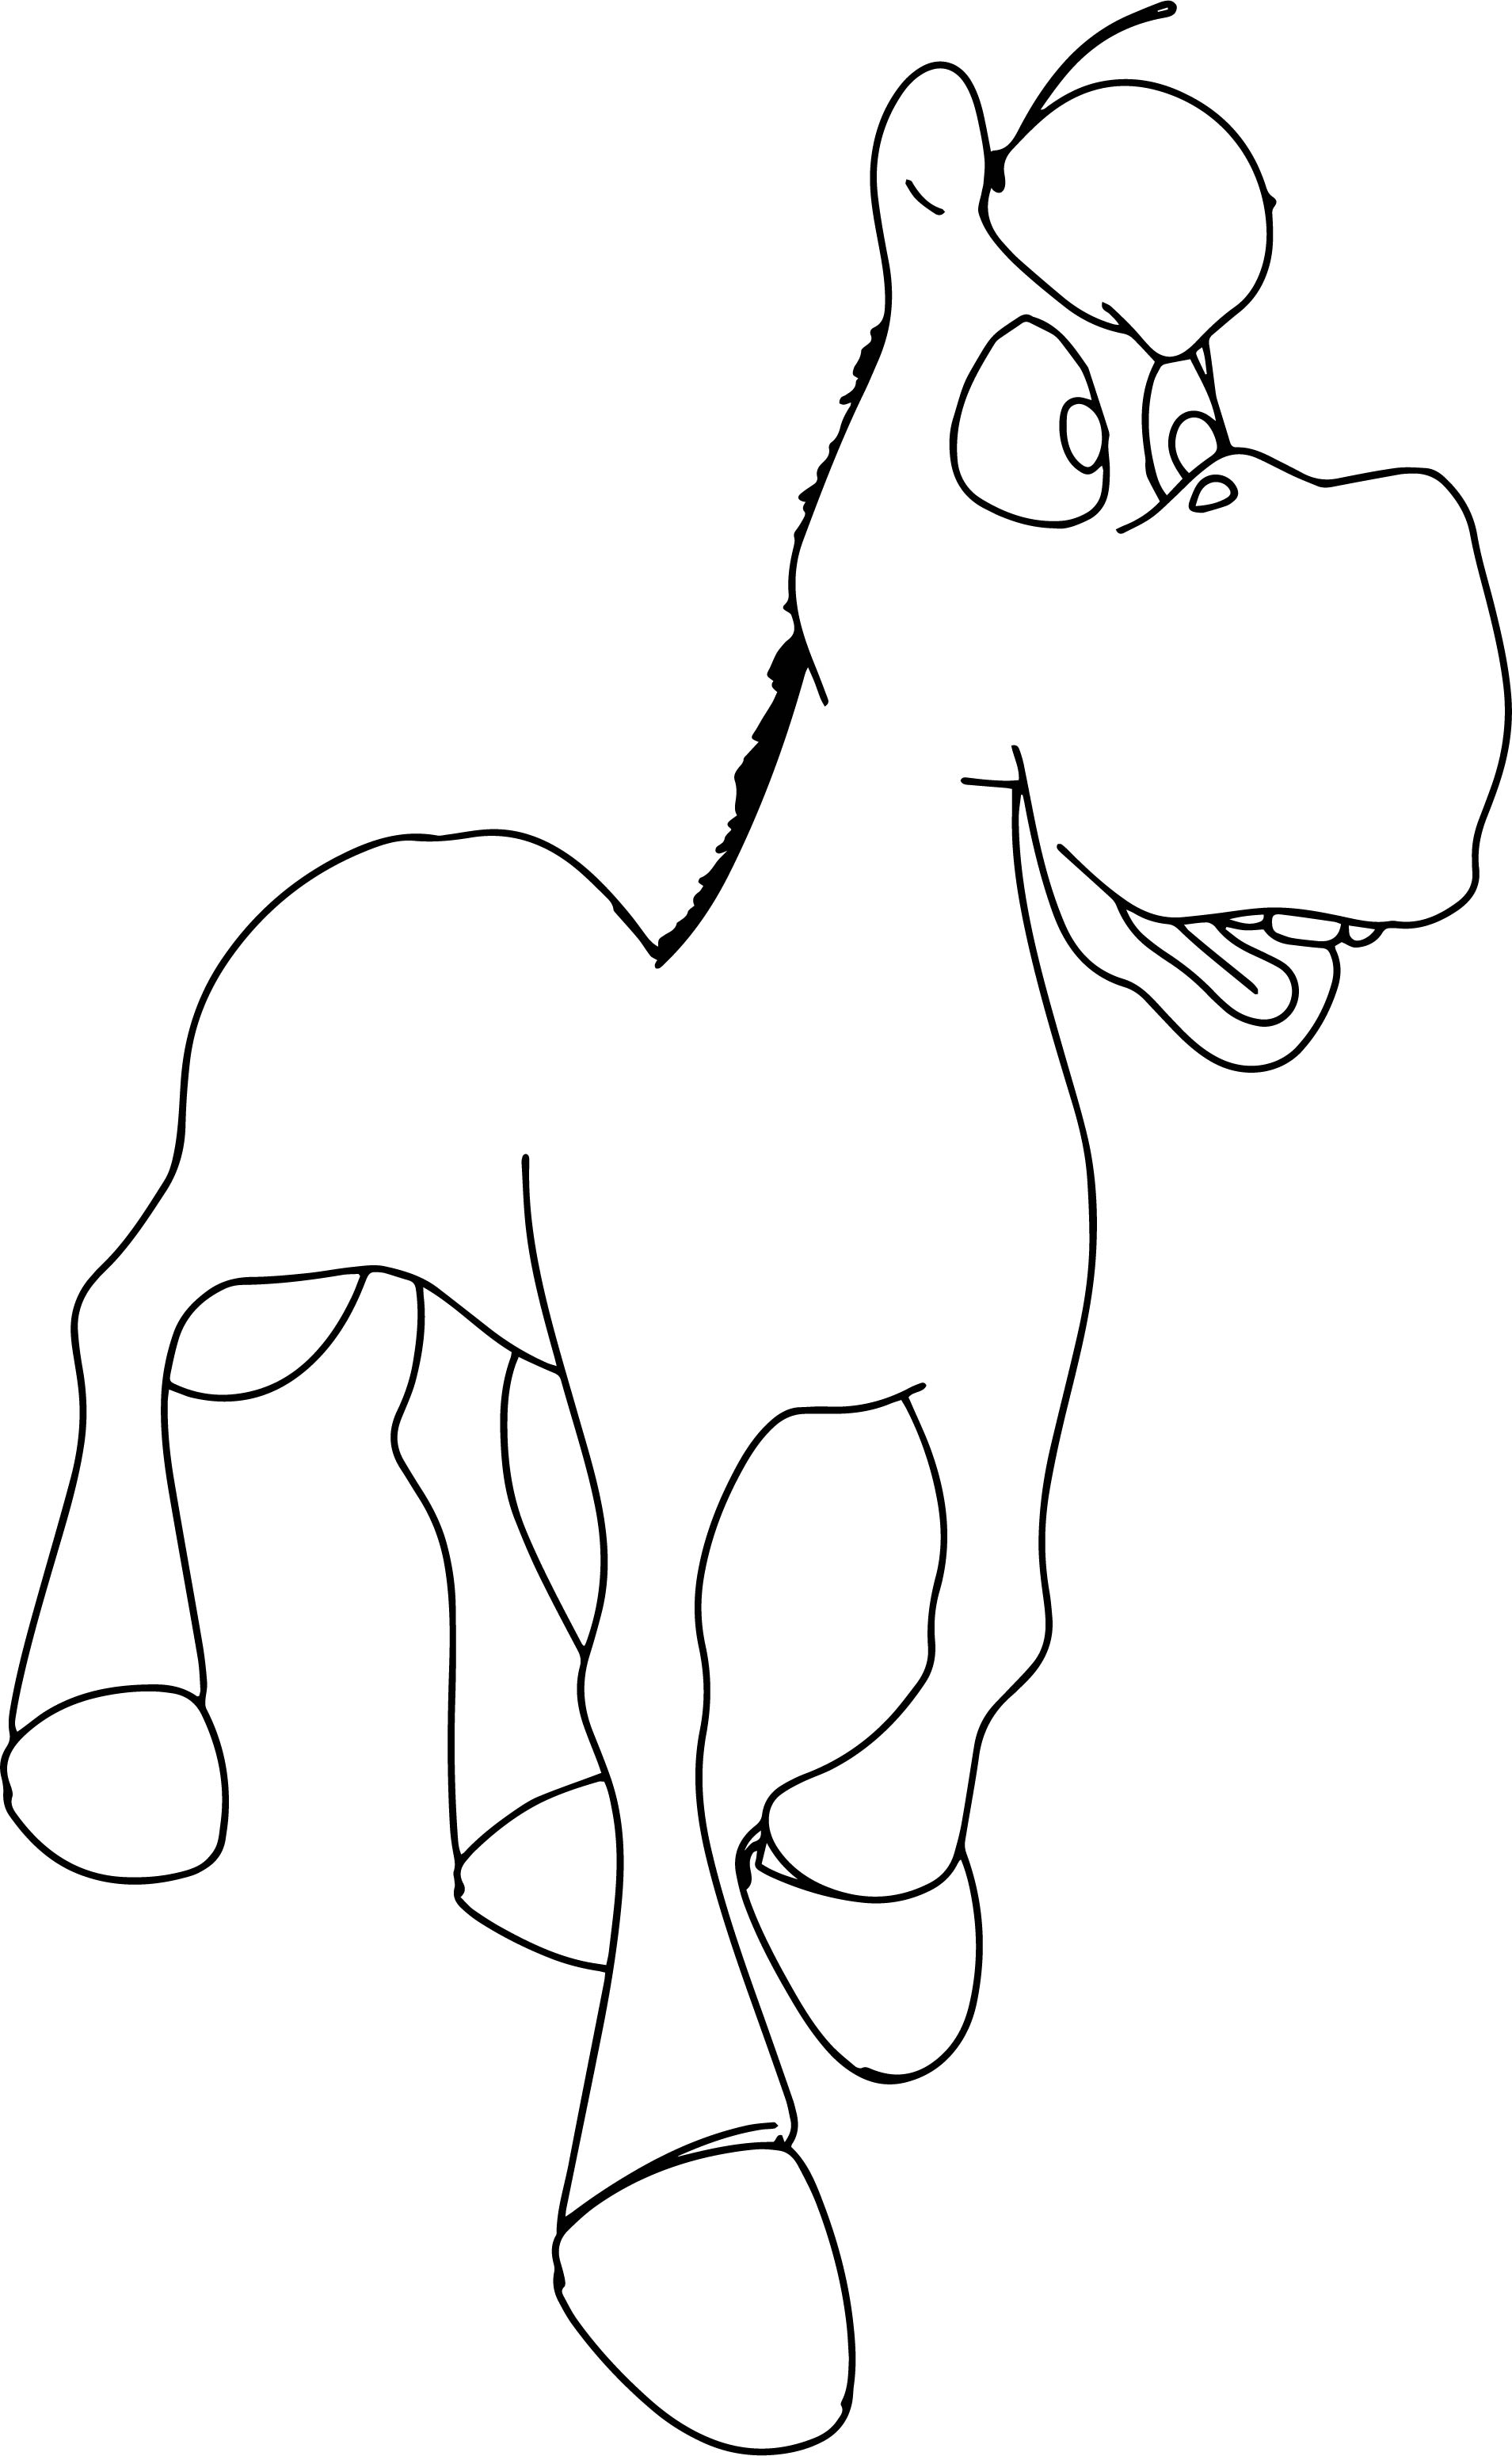 Walking Cartoon Horse Coloring Page